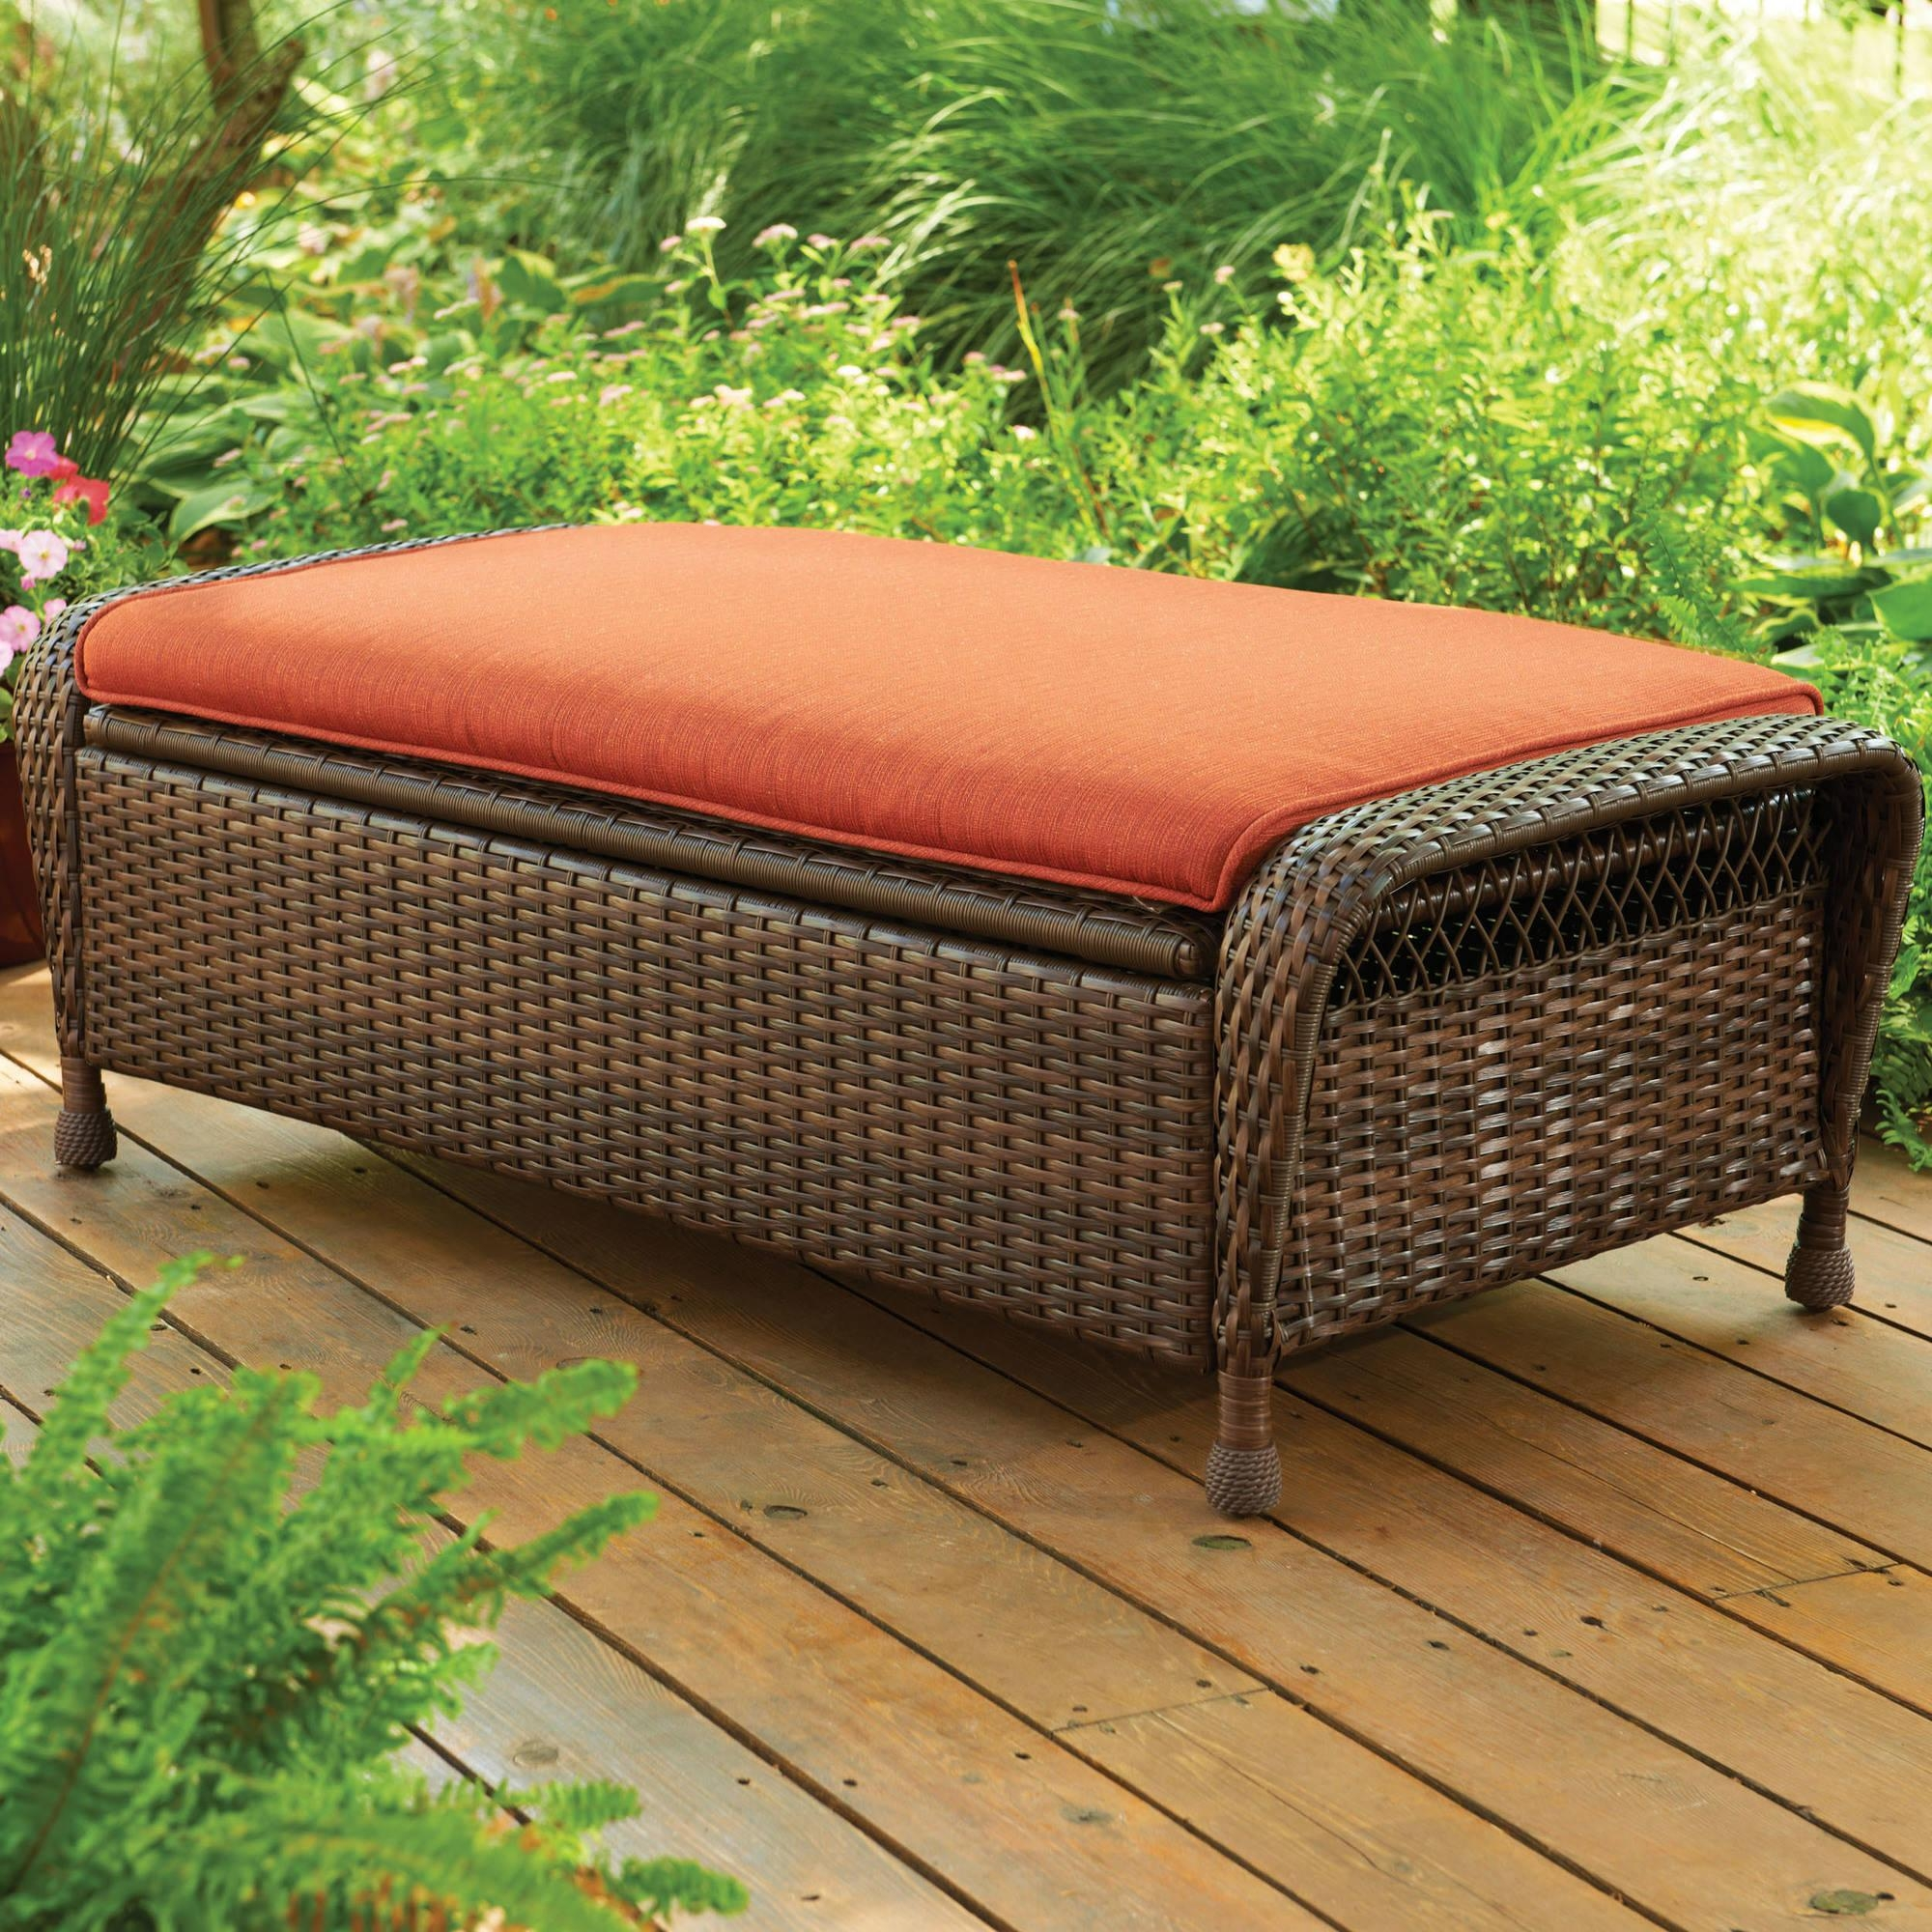 Patio Furniture – Walmart For Outdoor Sofas And Chairs (Image 13 of 20)